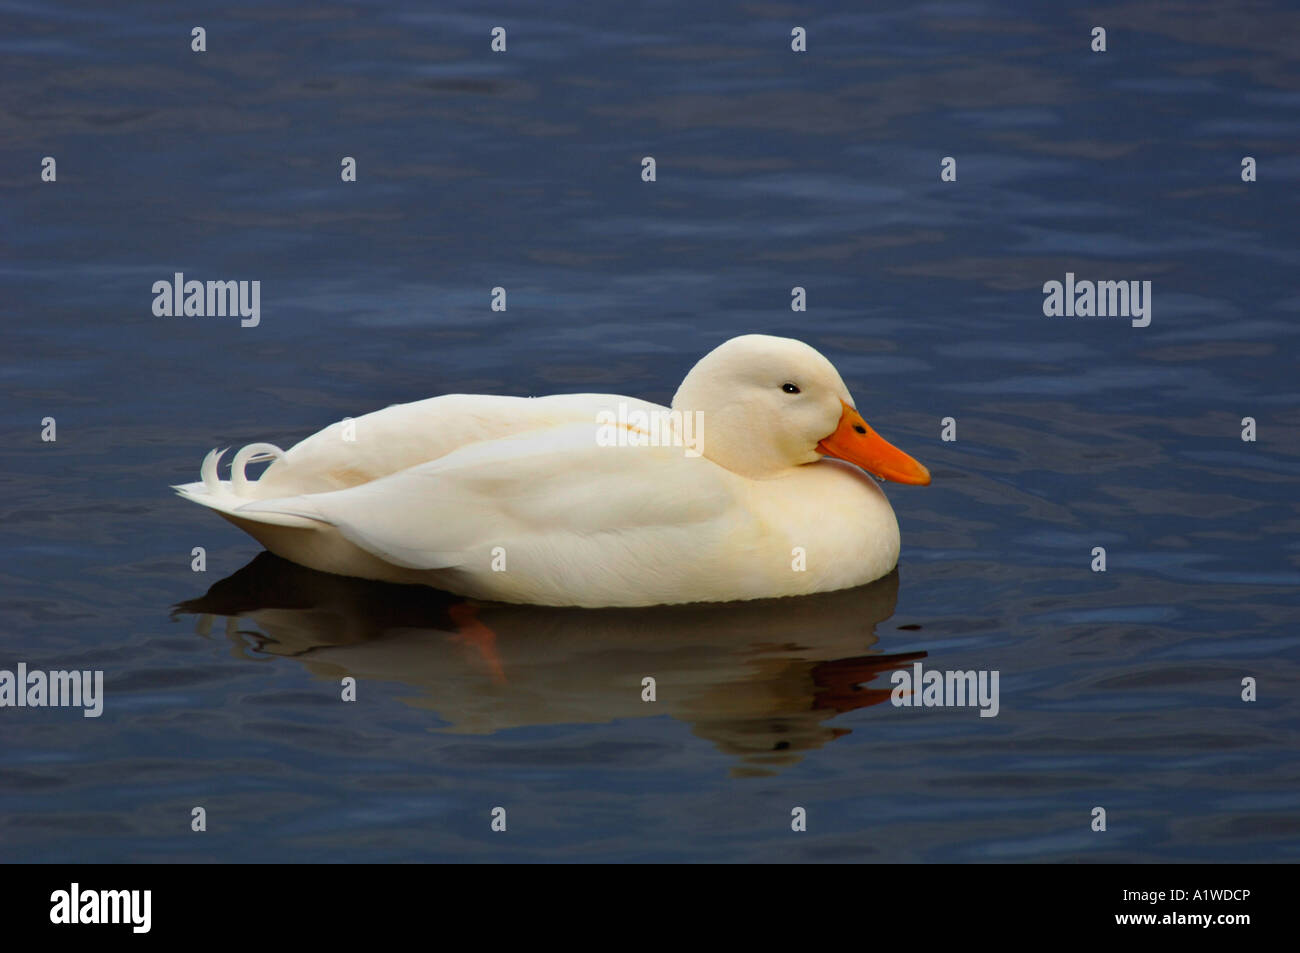 Aylesbury Duck Floating & Swimming,Gets Its Name From Aylesbury In Buckinghamshire, Where It Was first Bred - Stock Image